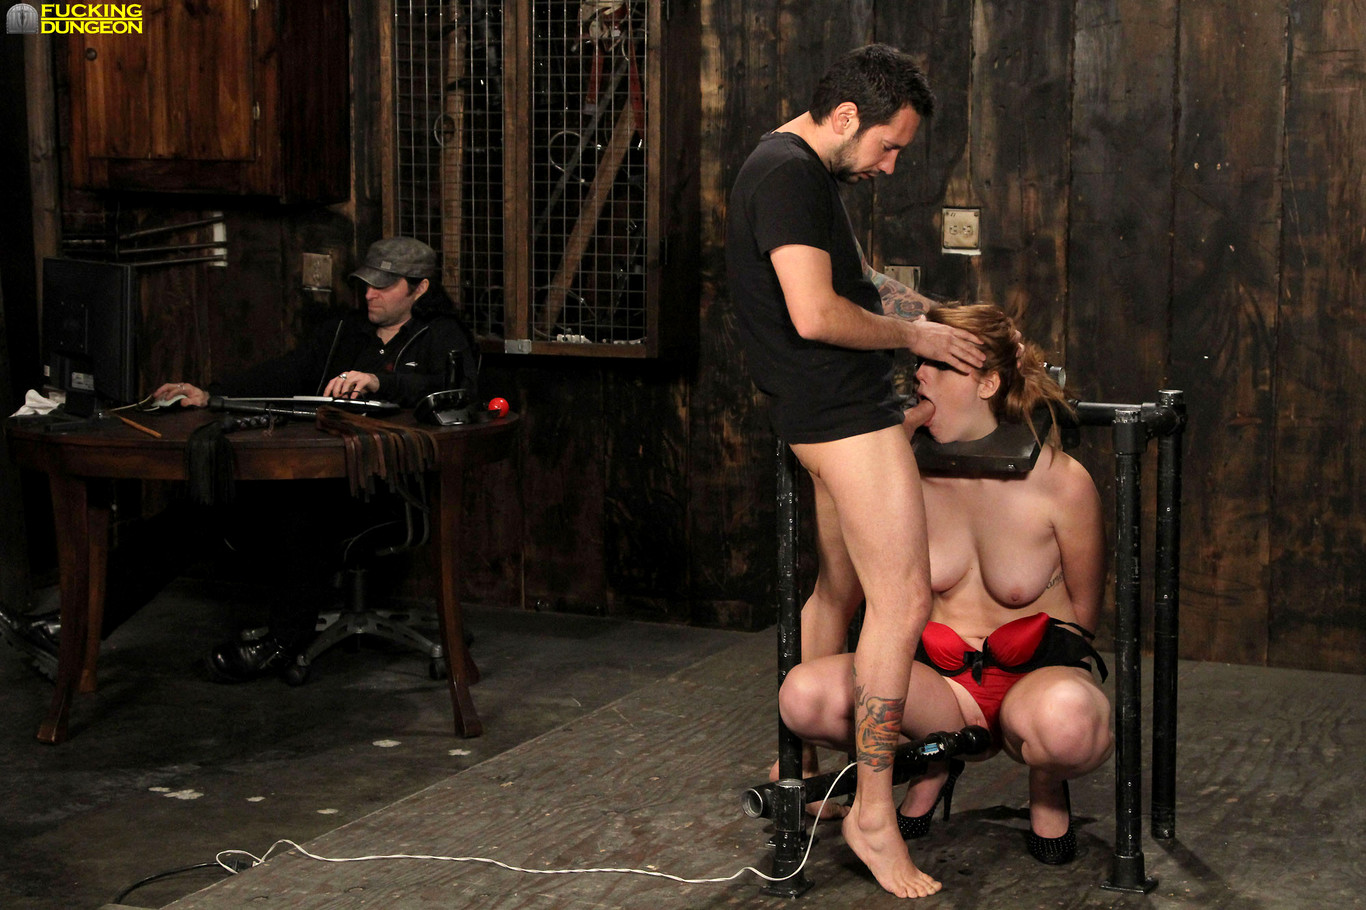 face-clit-submission-dungeon-news